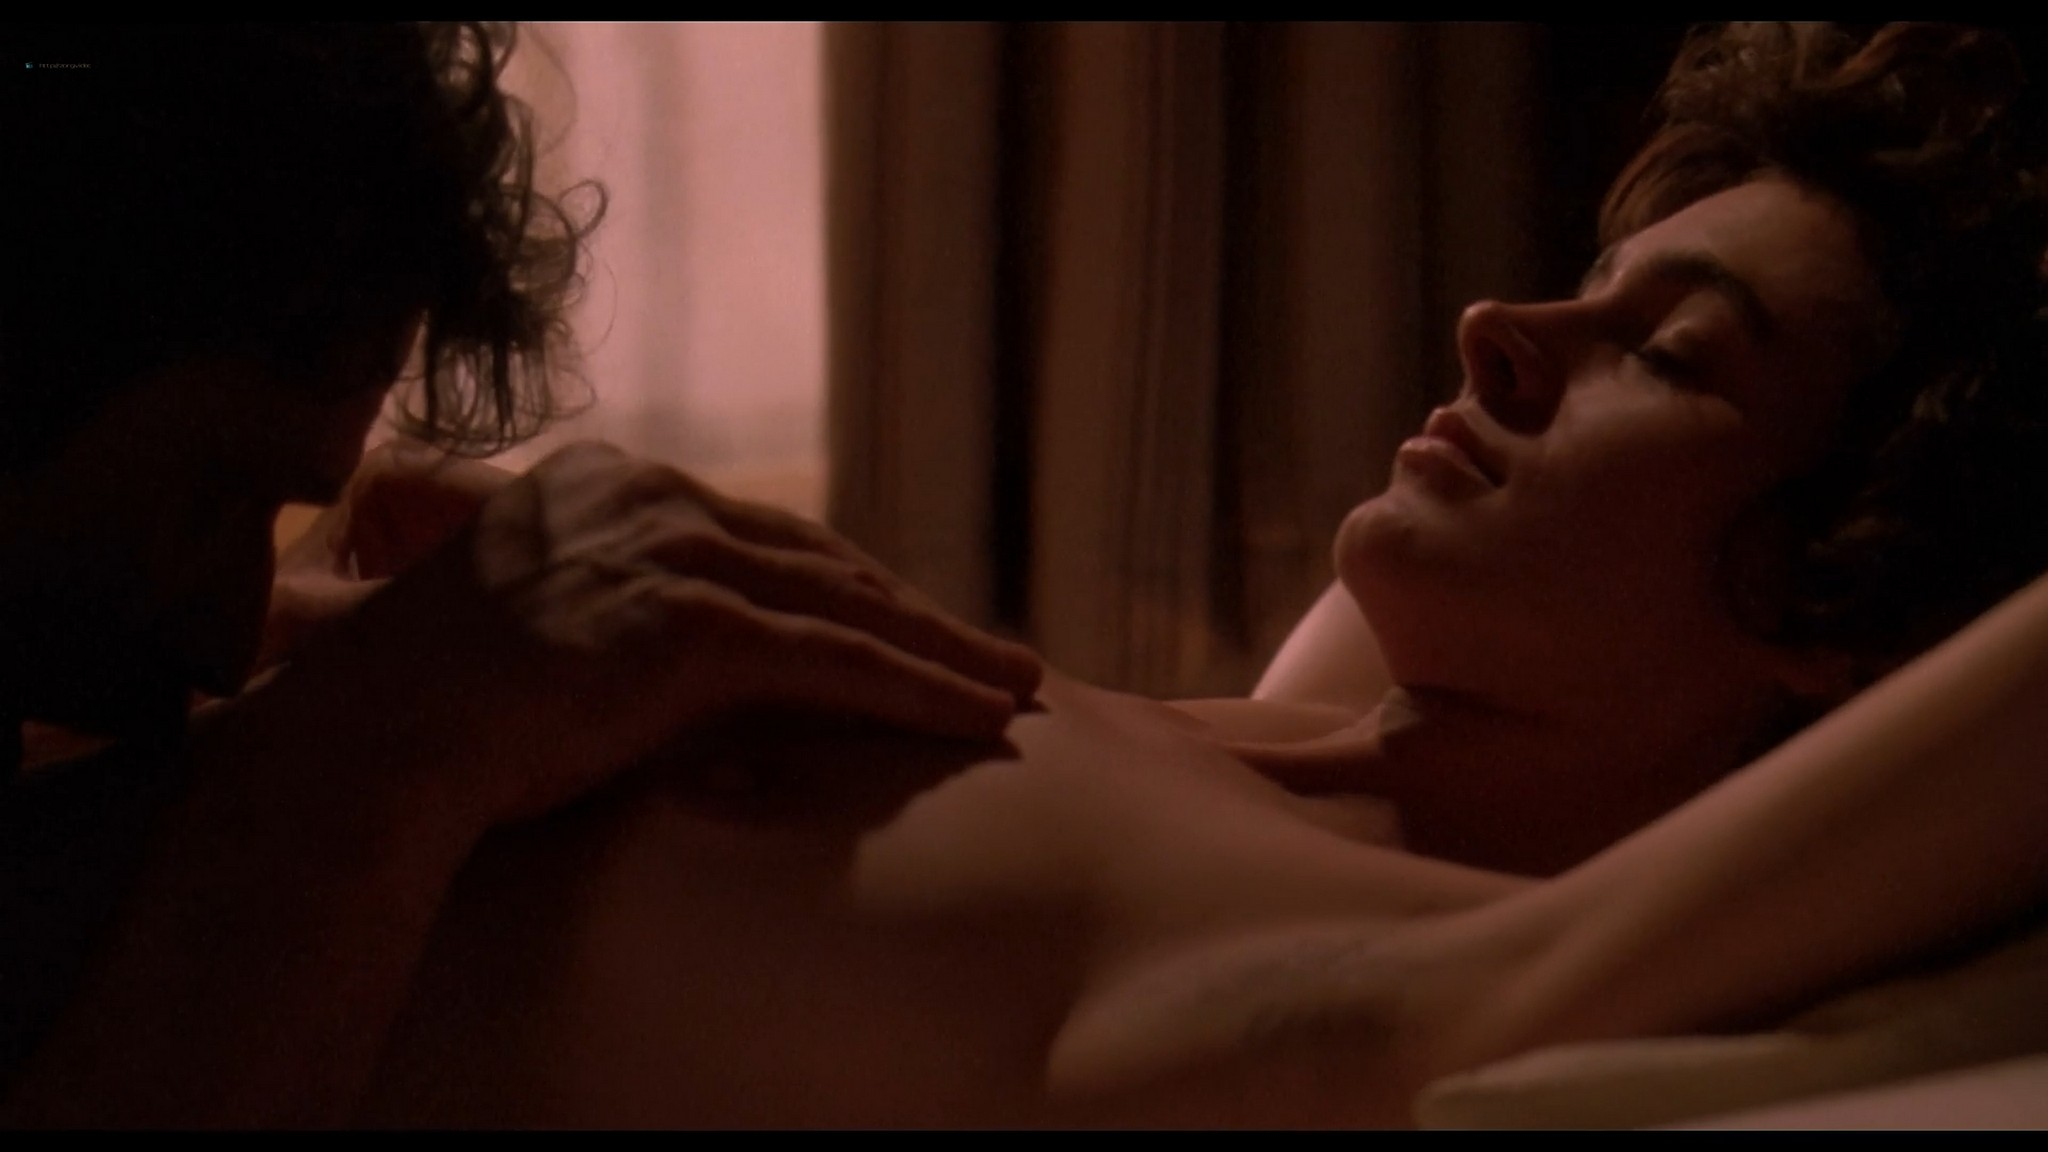 Sean Young nude full frontal Fern Dorsey and others nude Love Crimes 1992 1080p Web 12